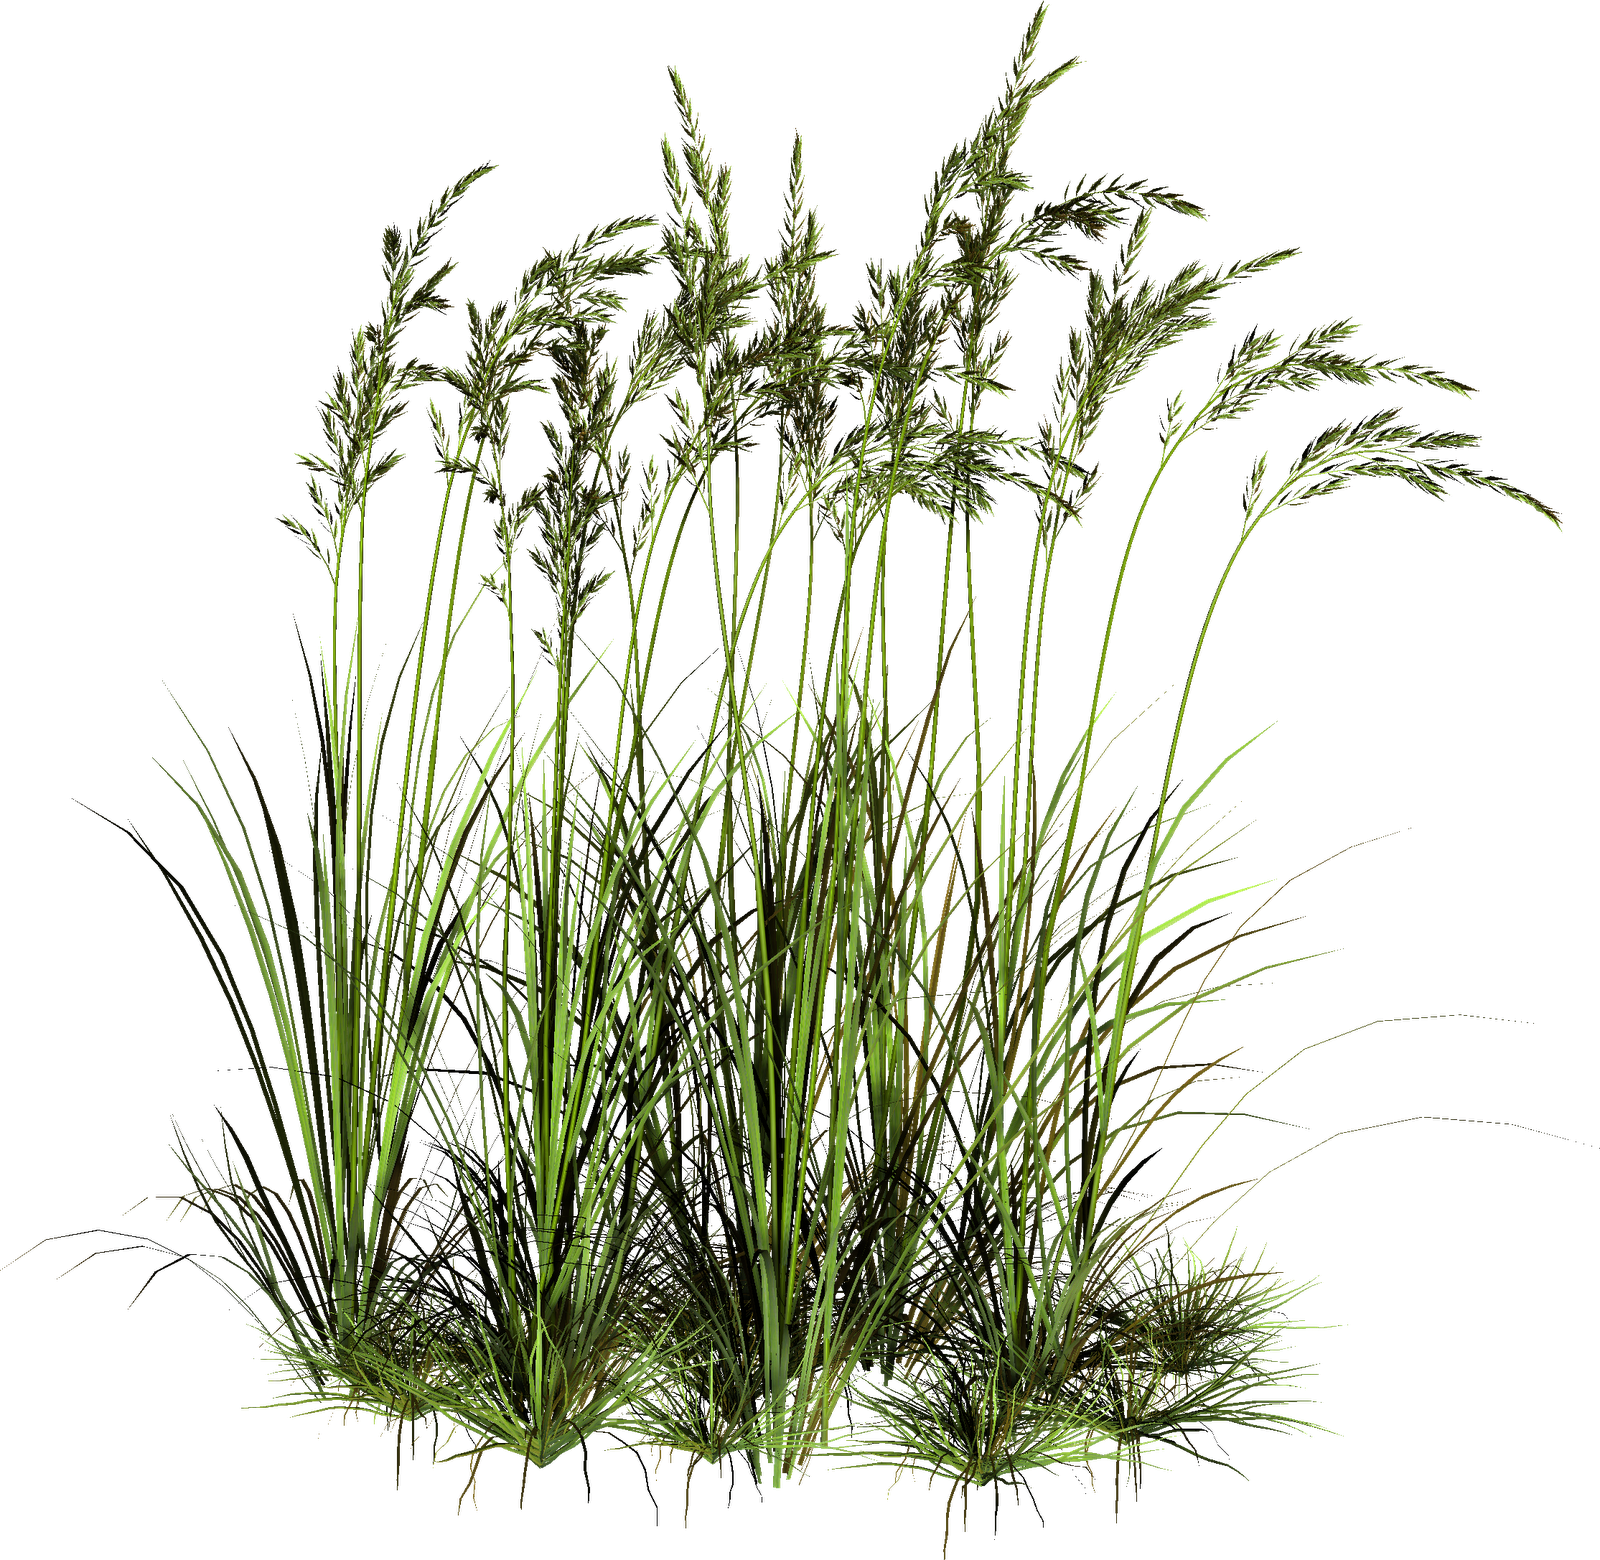 Tall grass png. Transparent pictures free icons